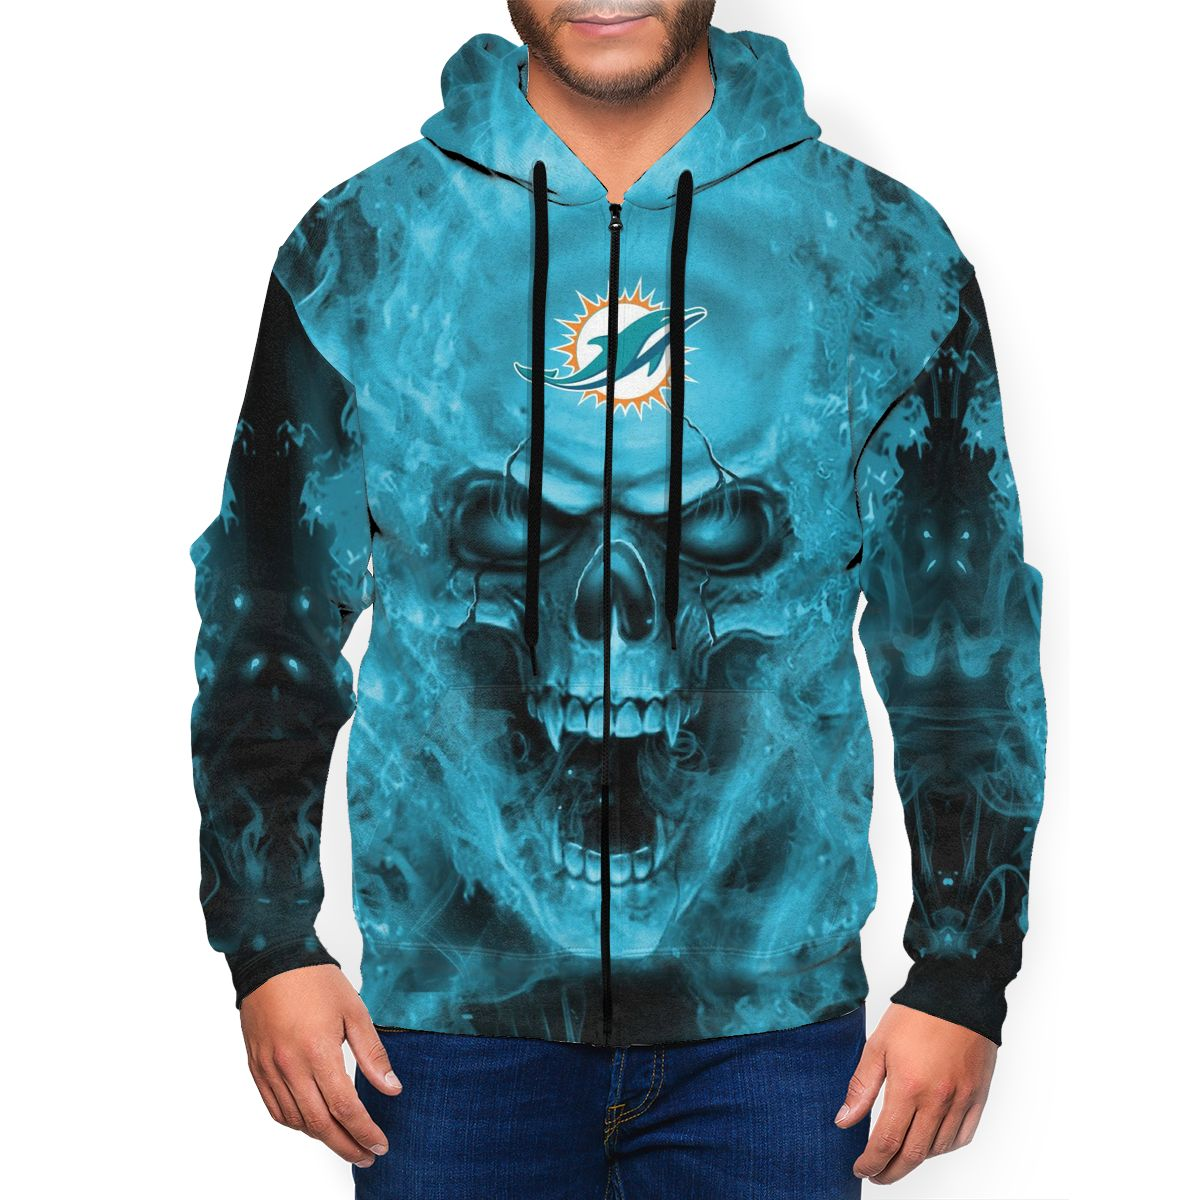 3D Skull Dolphins Men's Zip Hooded Sweatshirt